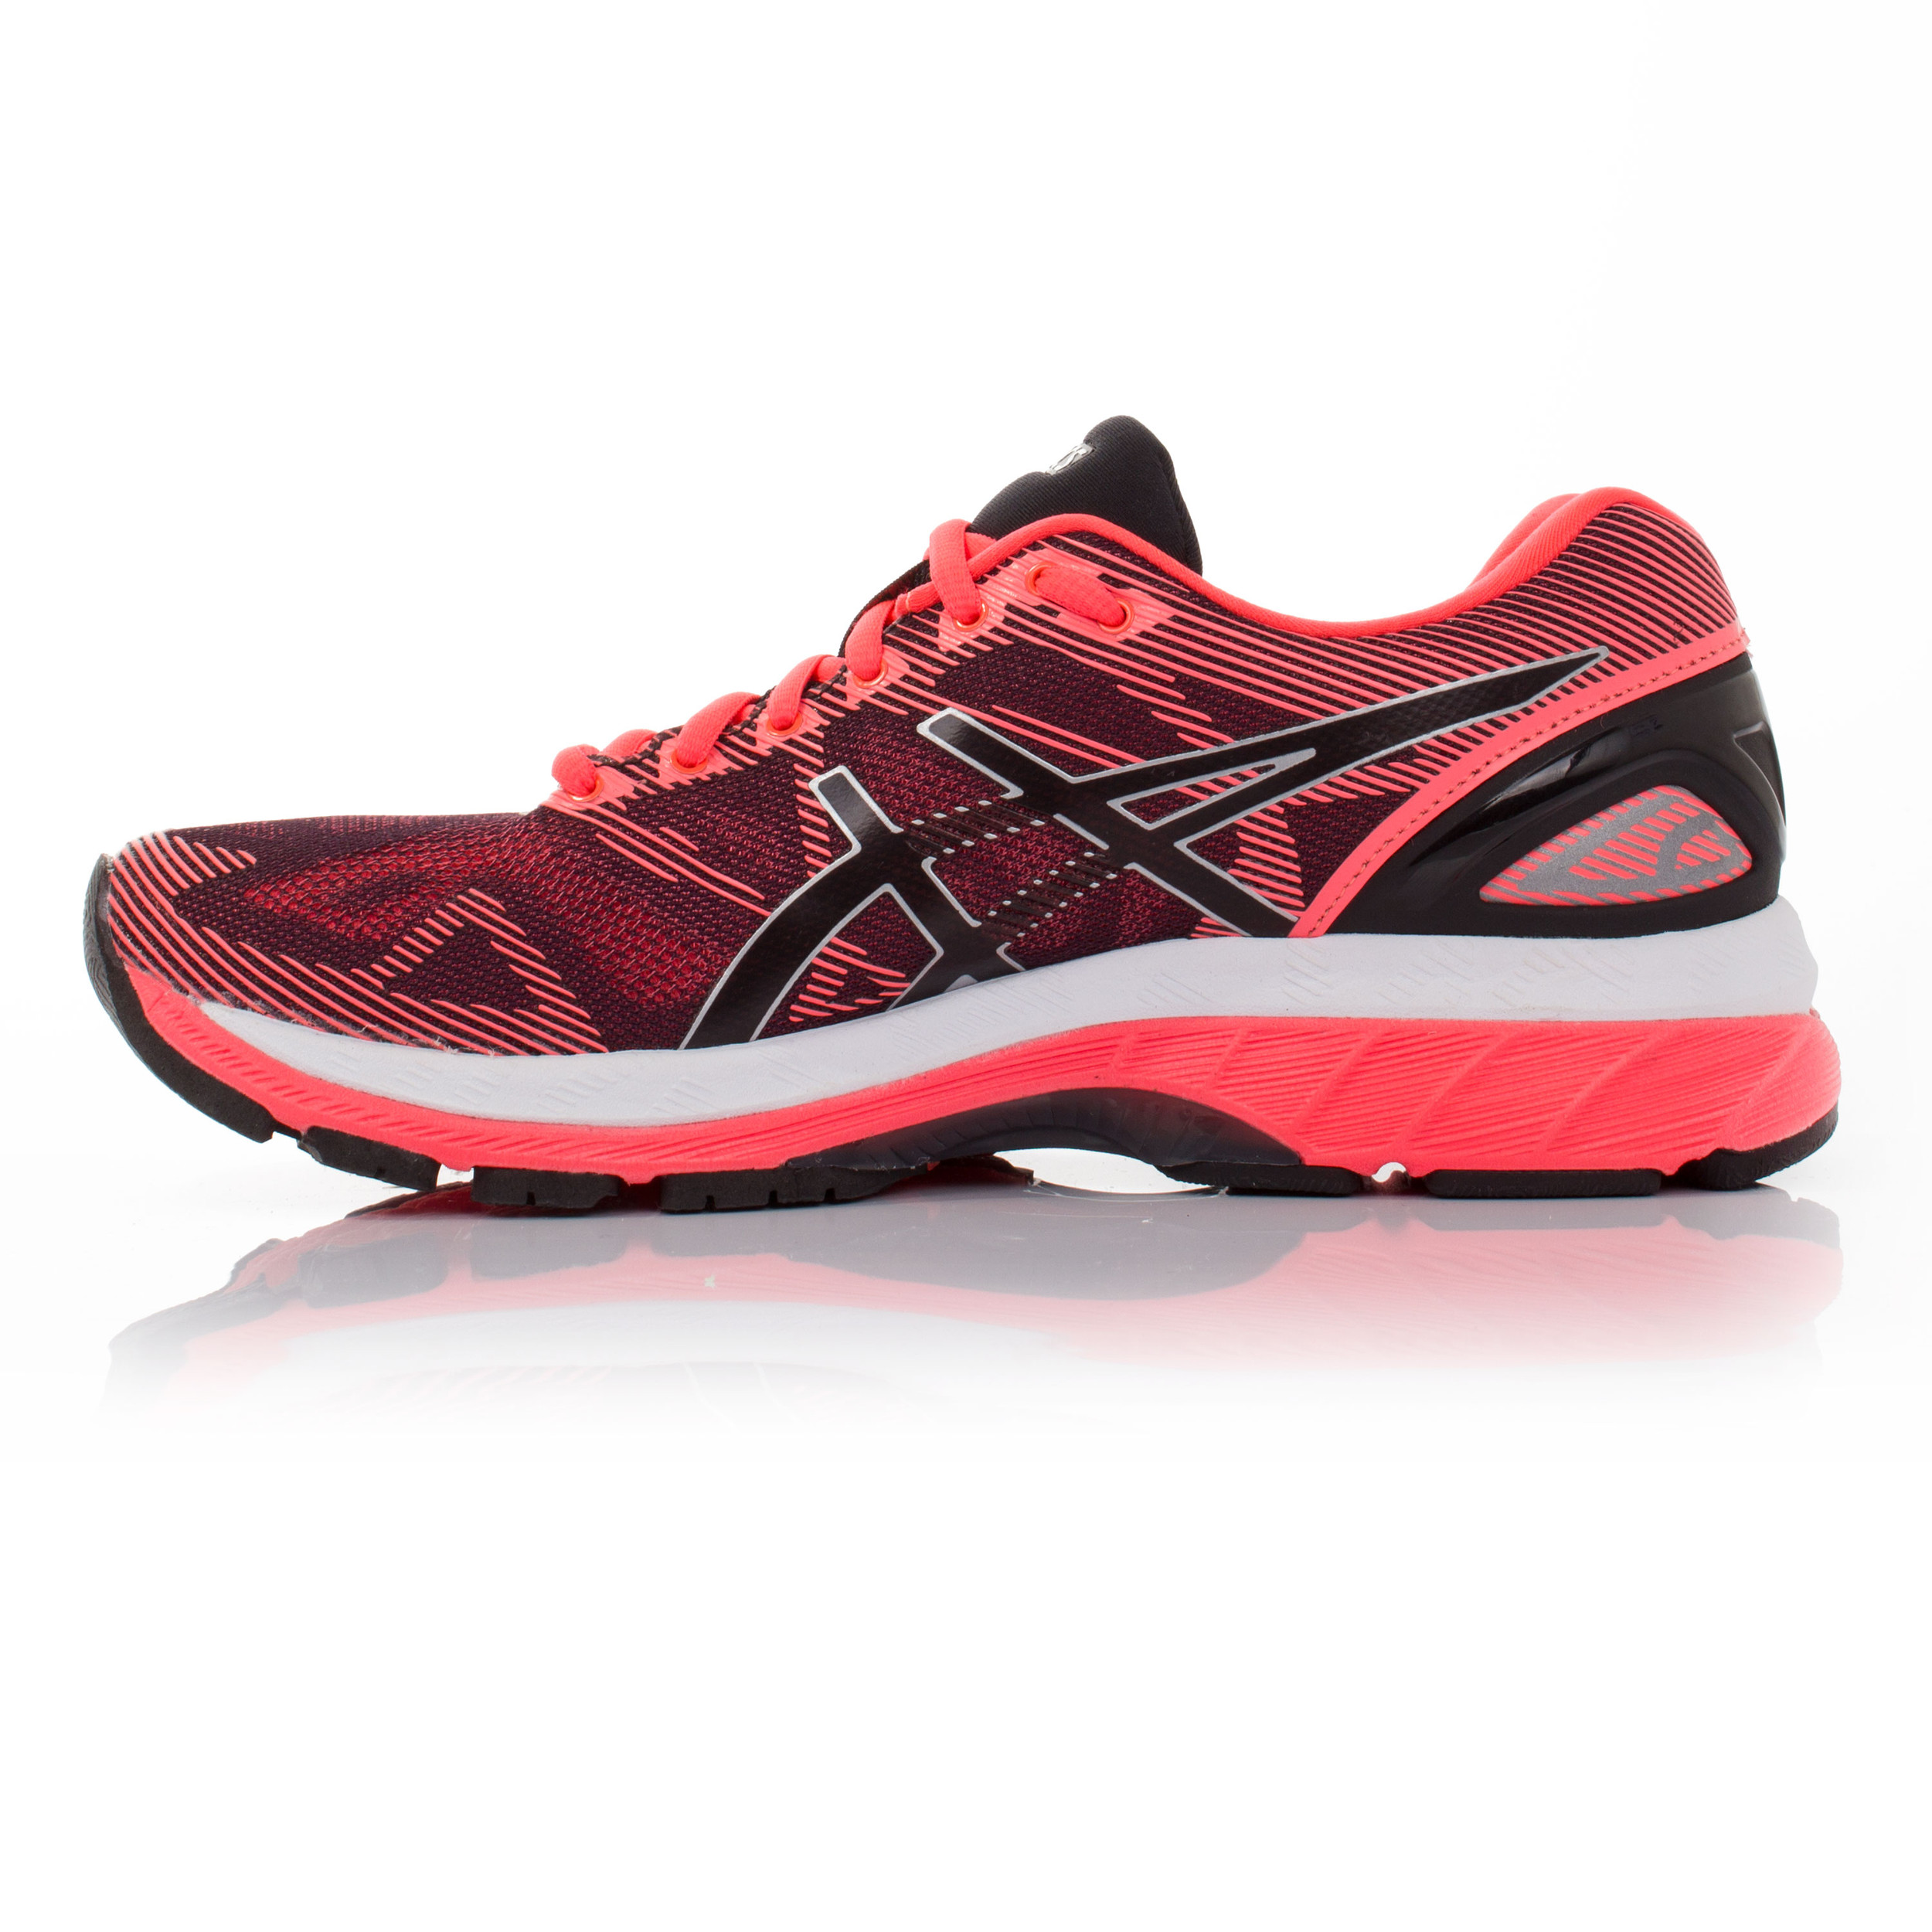 asics gel nimbus 19 womens pink cushioned running road. Black Bedroom Furniture Sets. Home Design Ideas